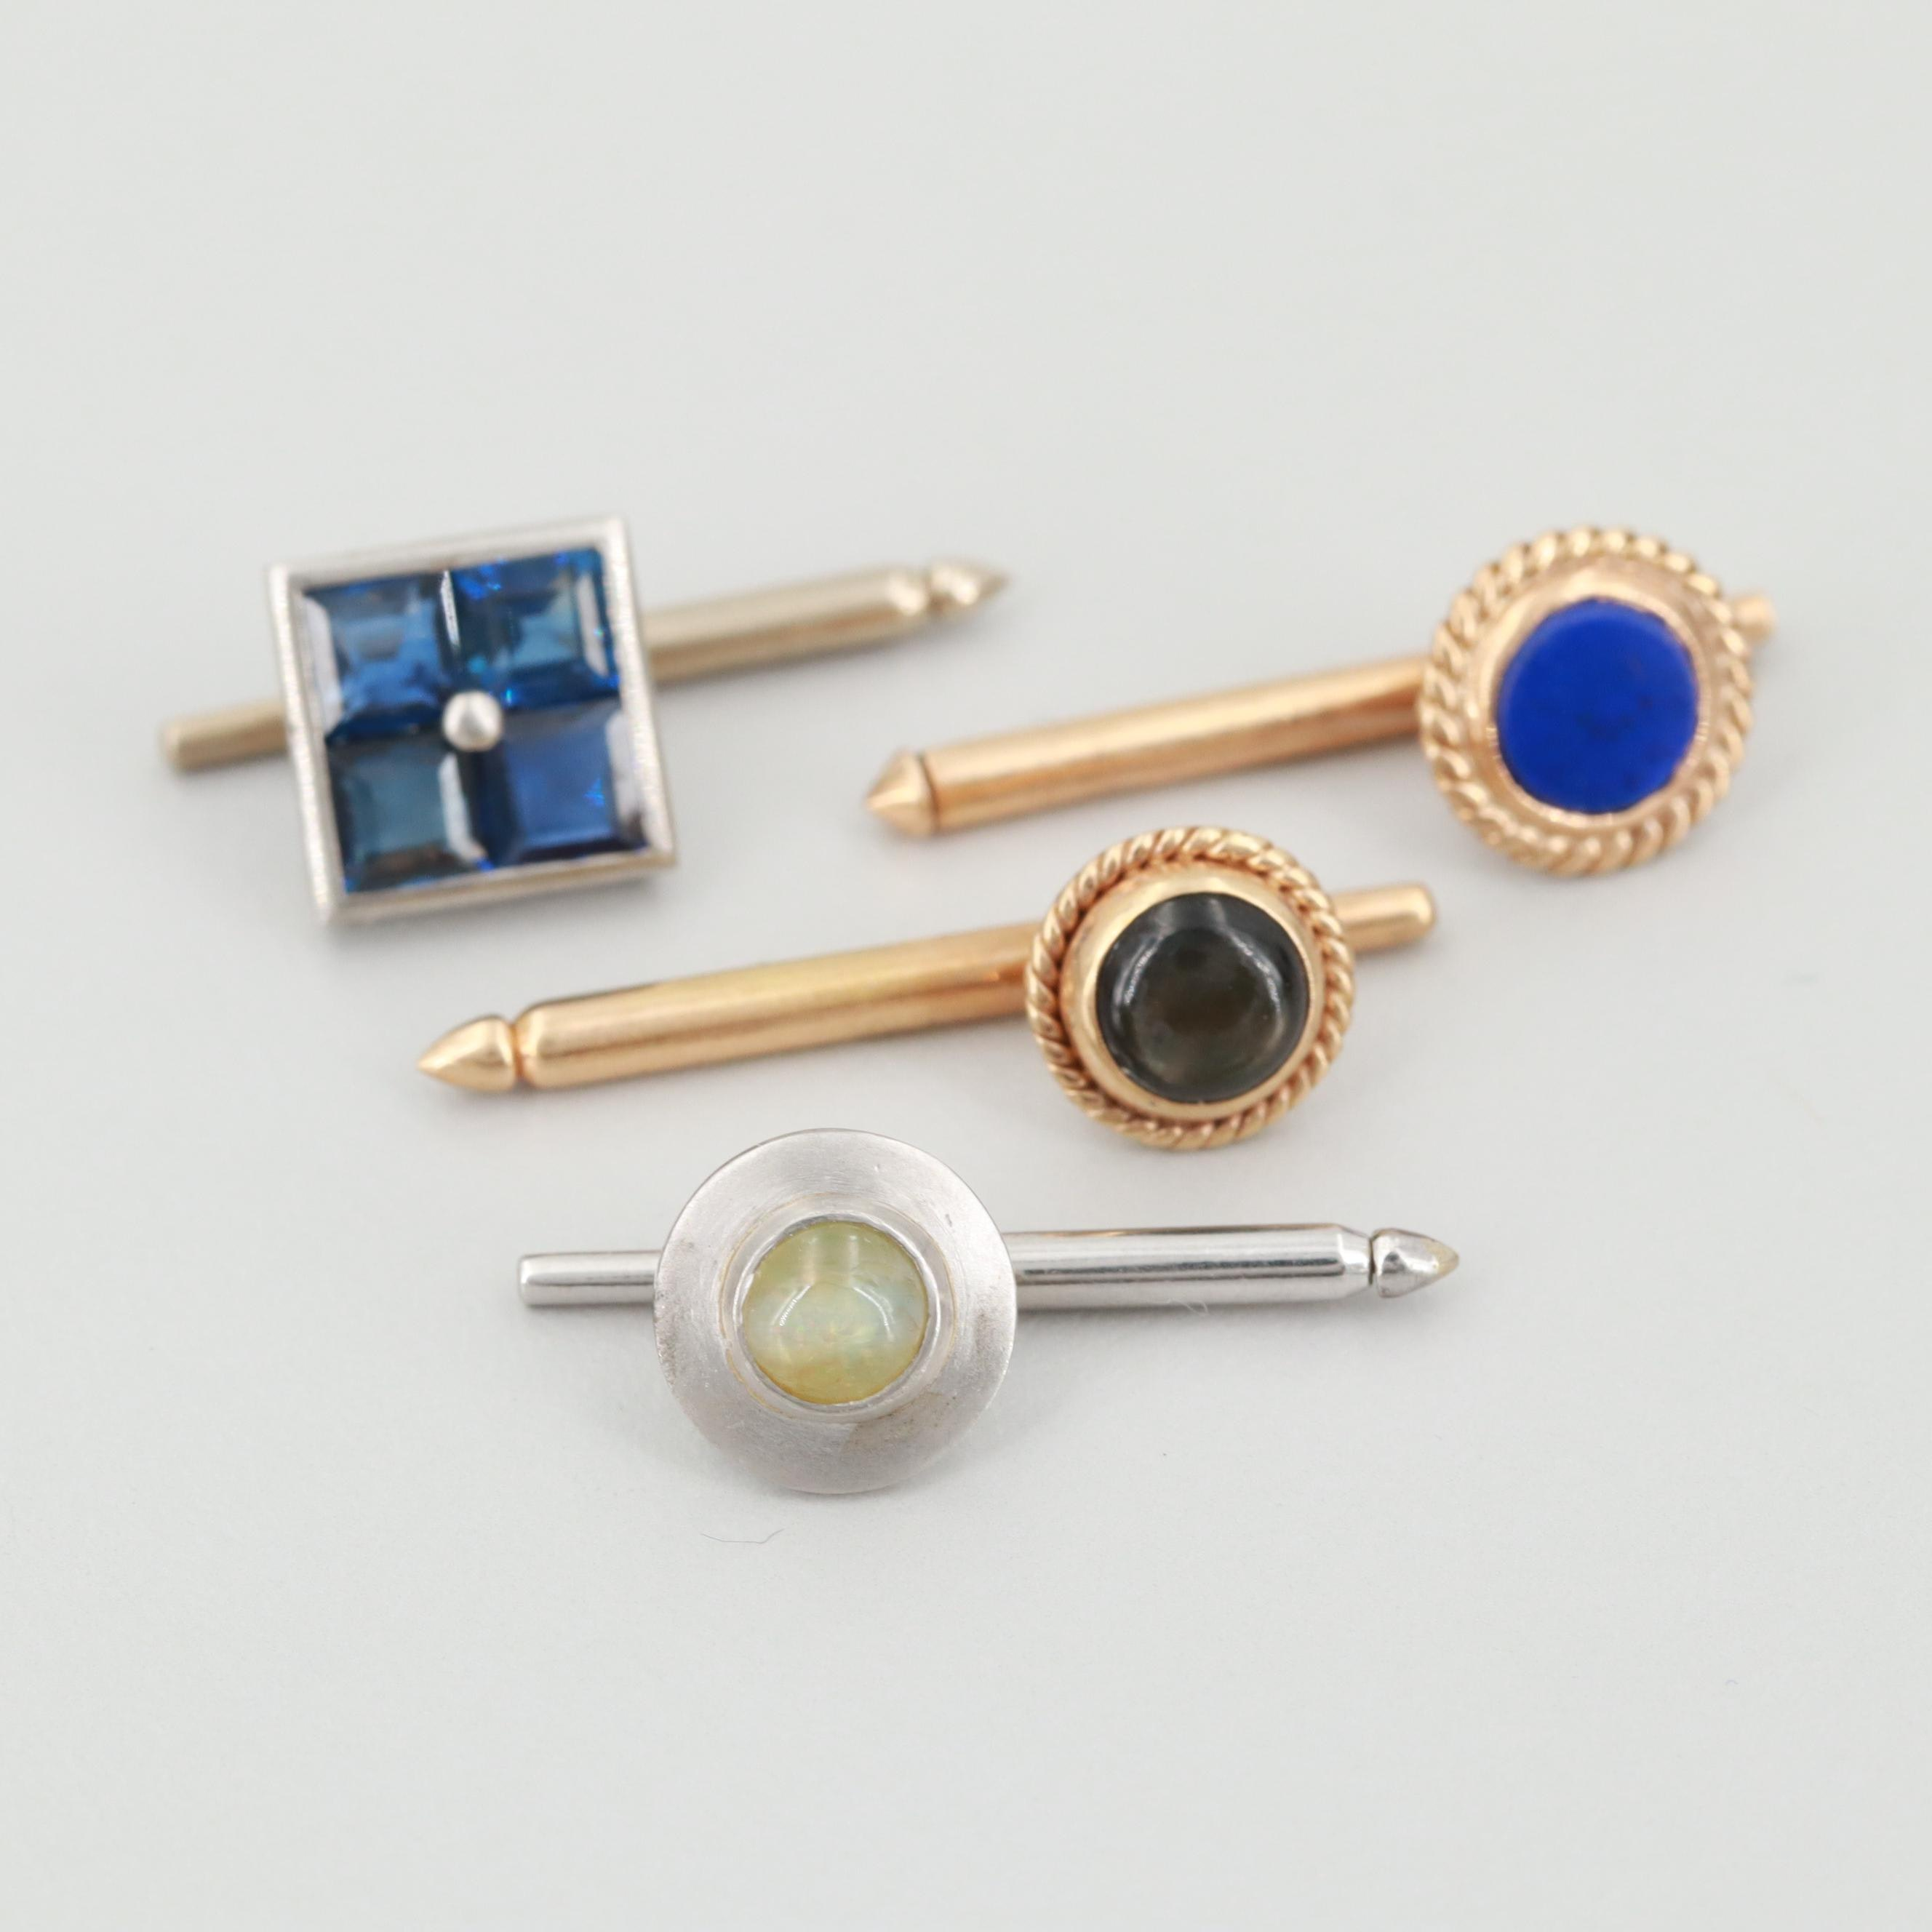 14K Gold and Platinum Single Cufflinks Including Black Star Sapphire